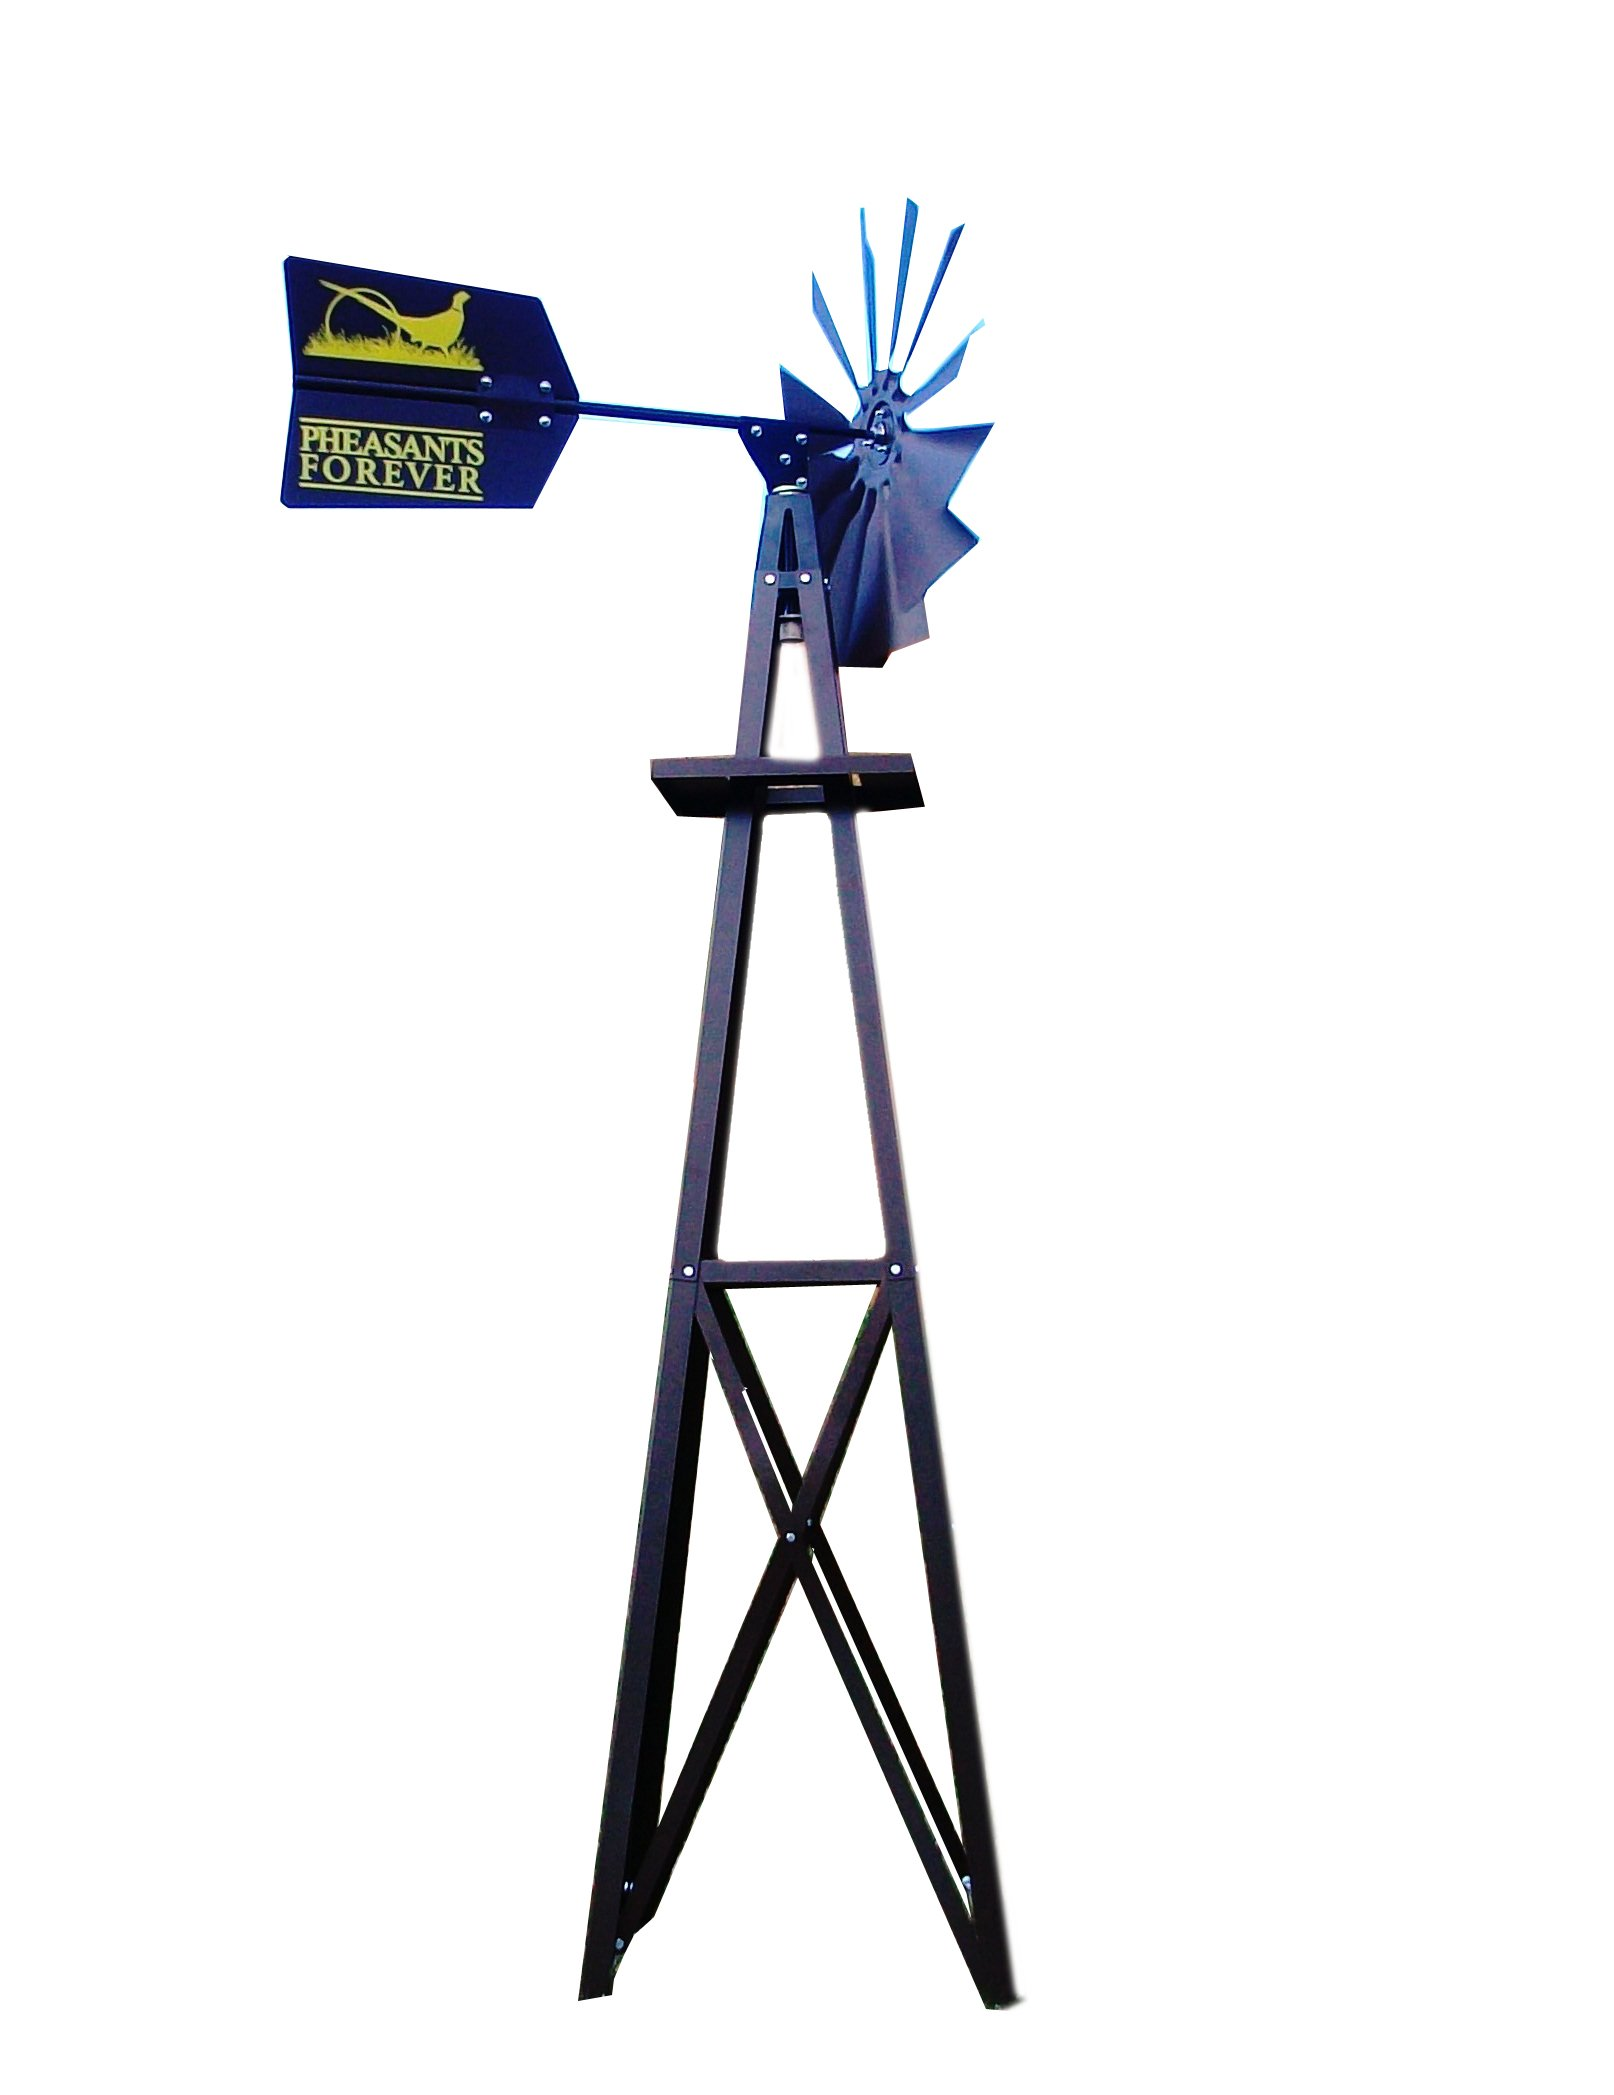 Outdoor Water Solutions BYW0118 Small Pheasants Forever Bronze Powder Coated Backyard Windmill by Outdoor Water Solutions